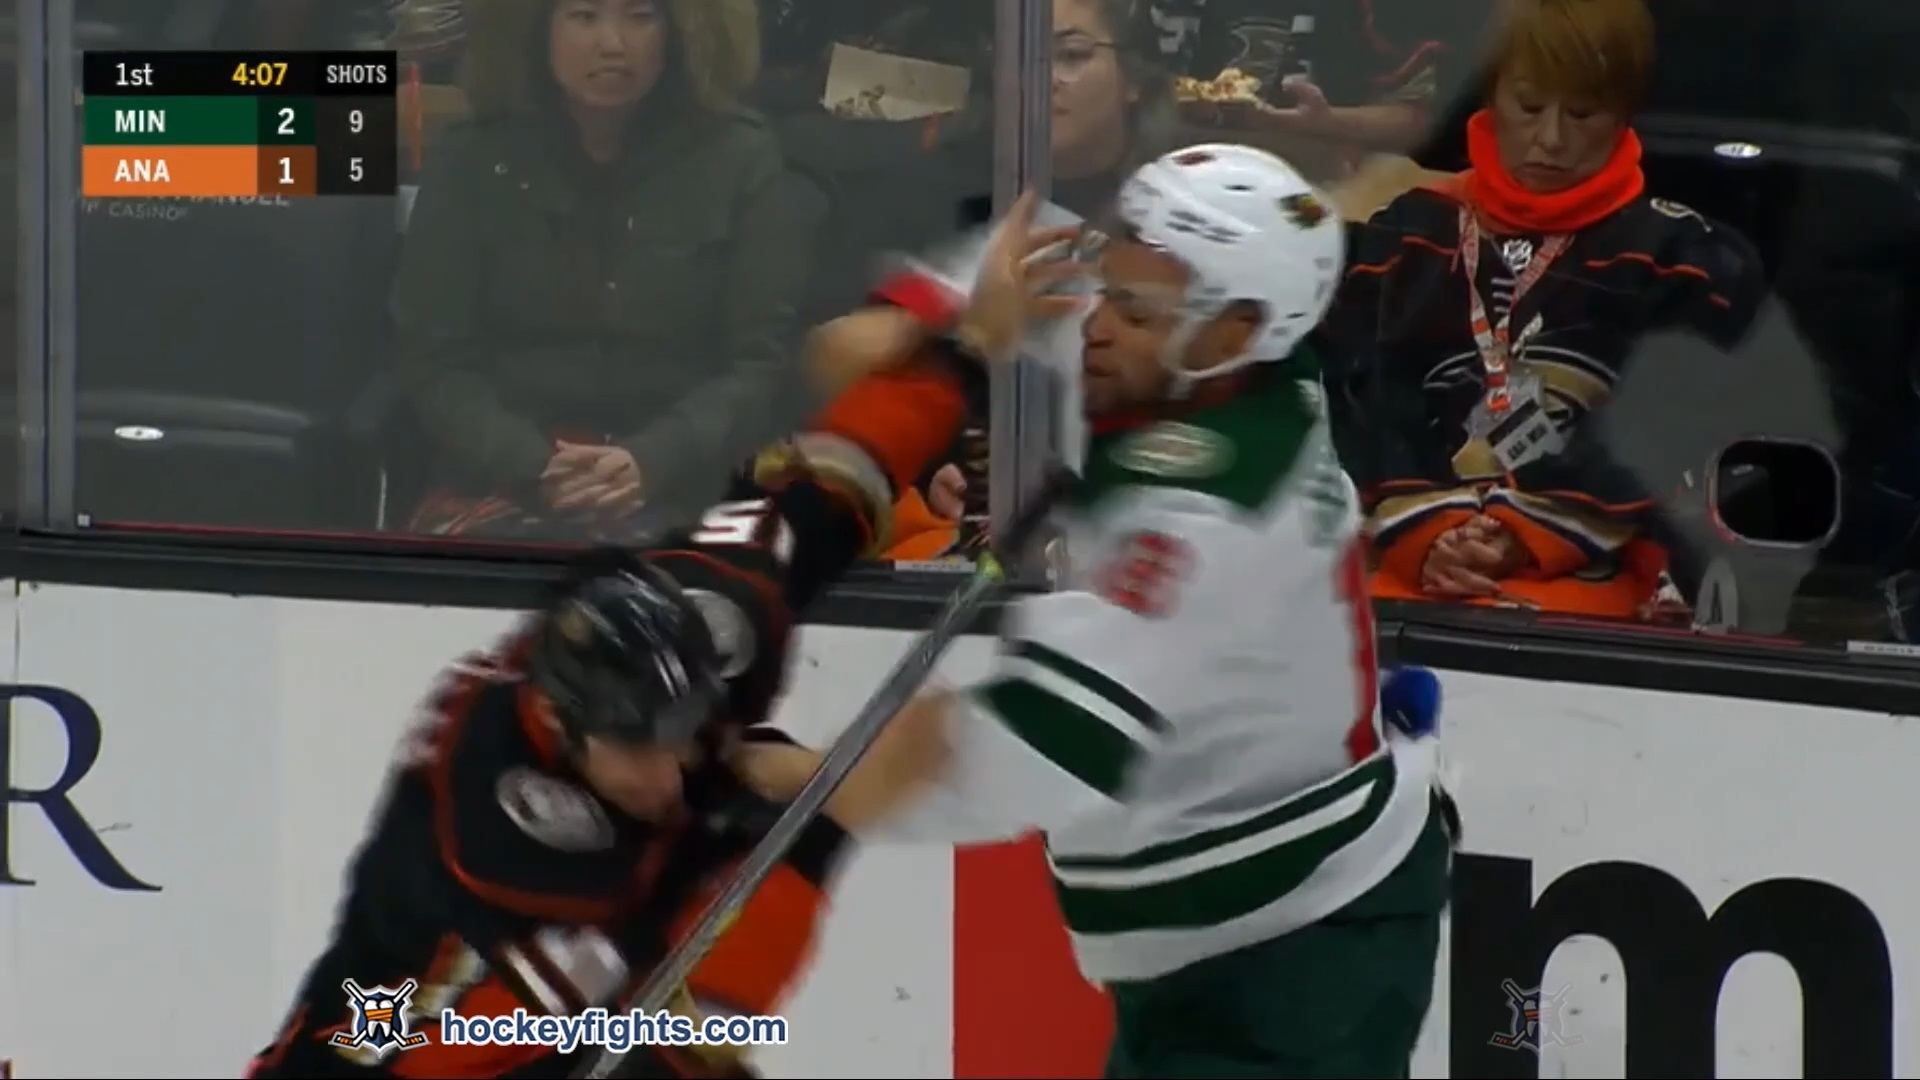 Ryan Getzlaf vs. Jordan Greenway